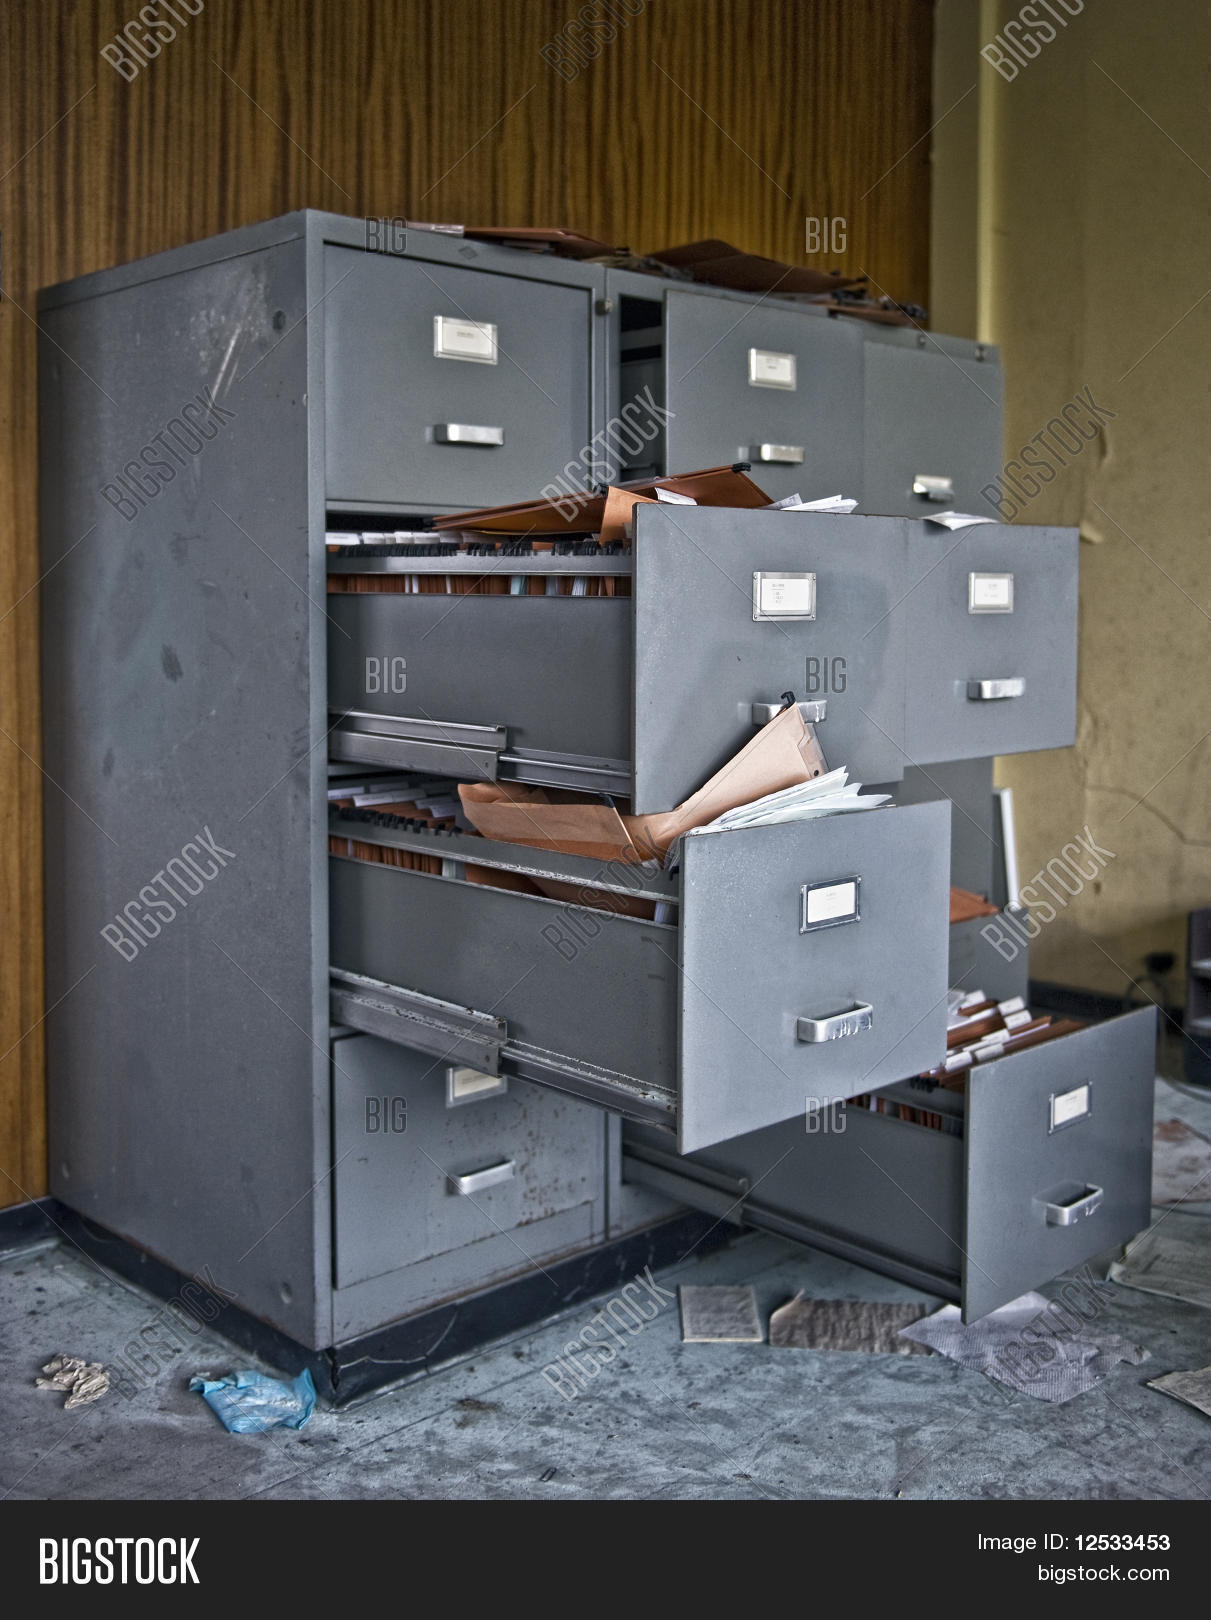 Messy Filing Cabinets Image & Photo | Bigstock